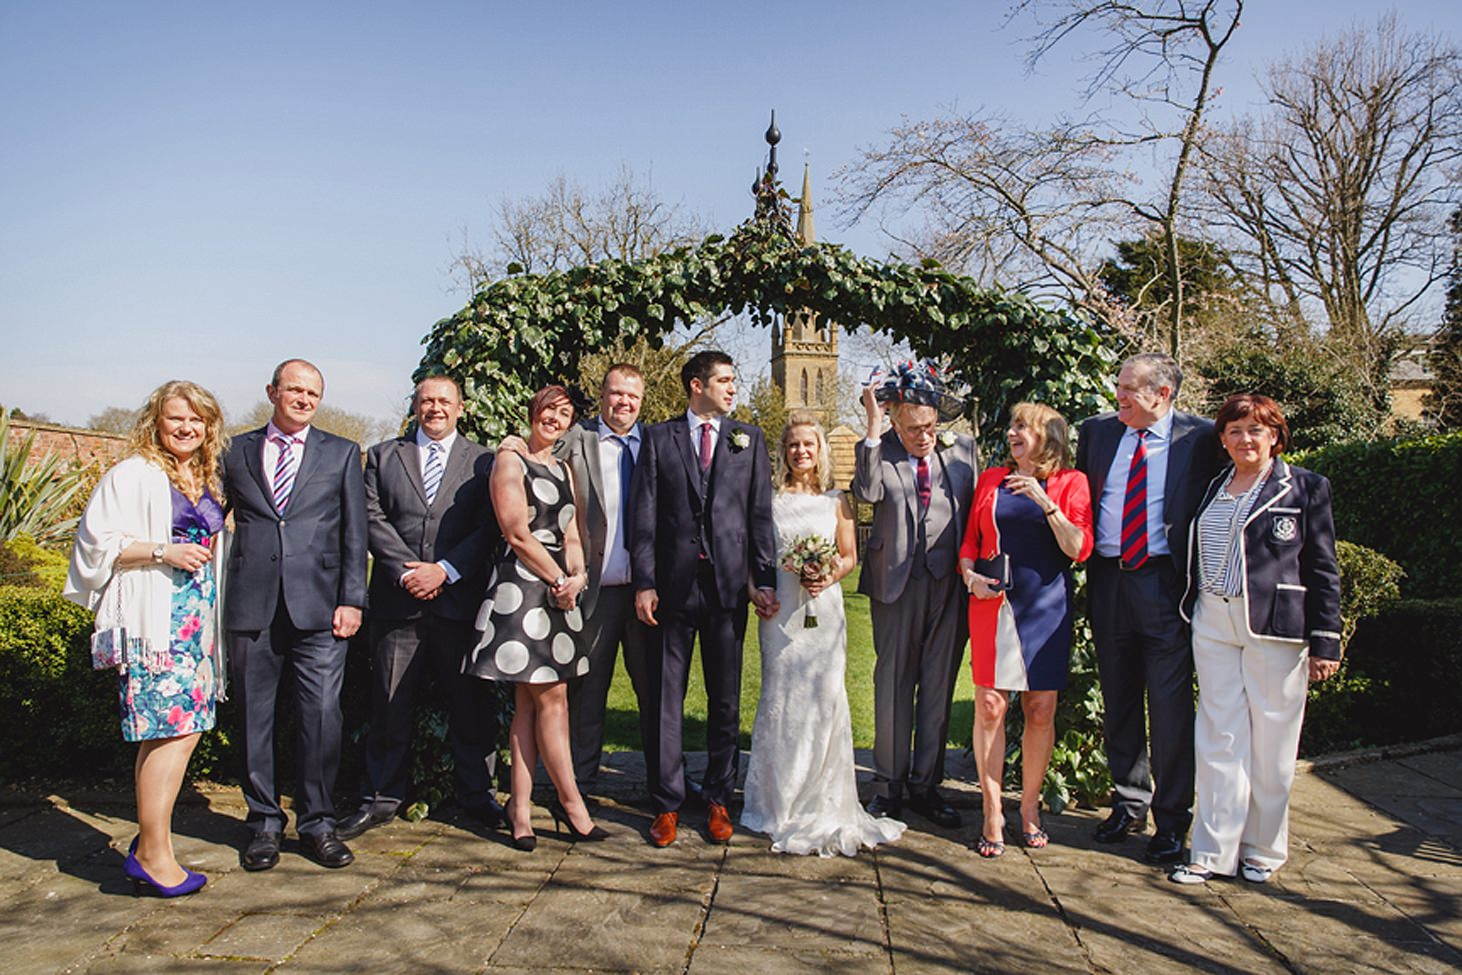 cotswolds wedding fun group portrait